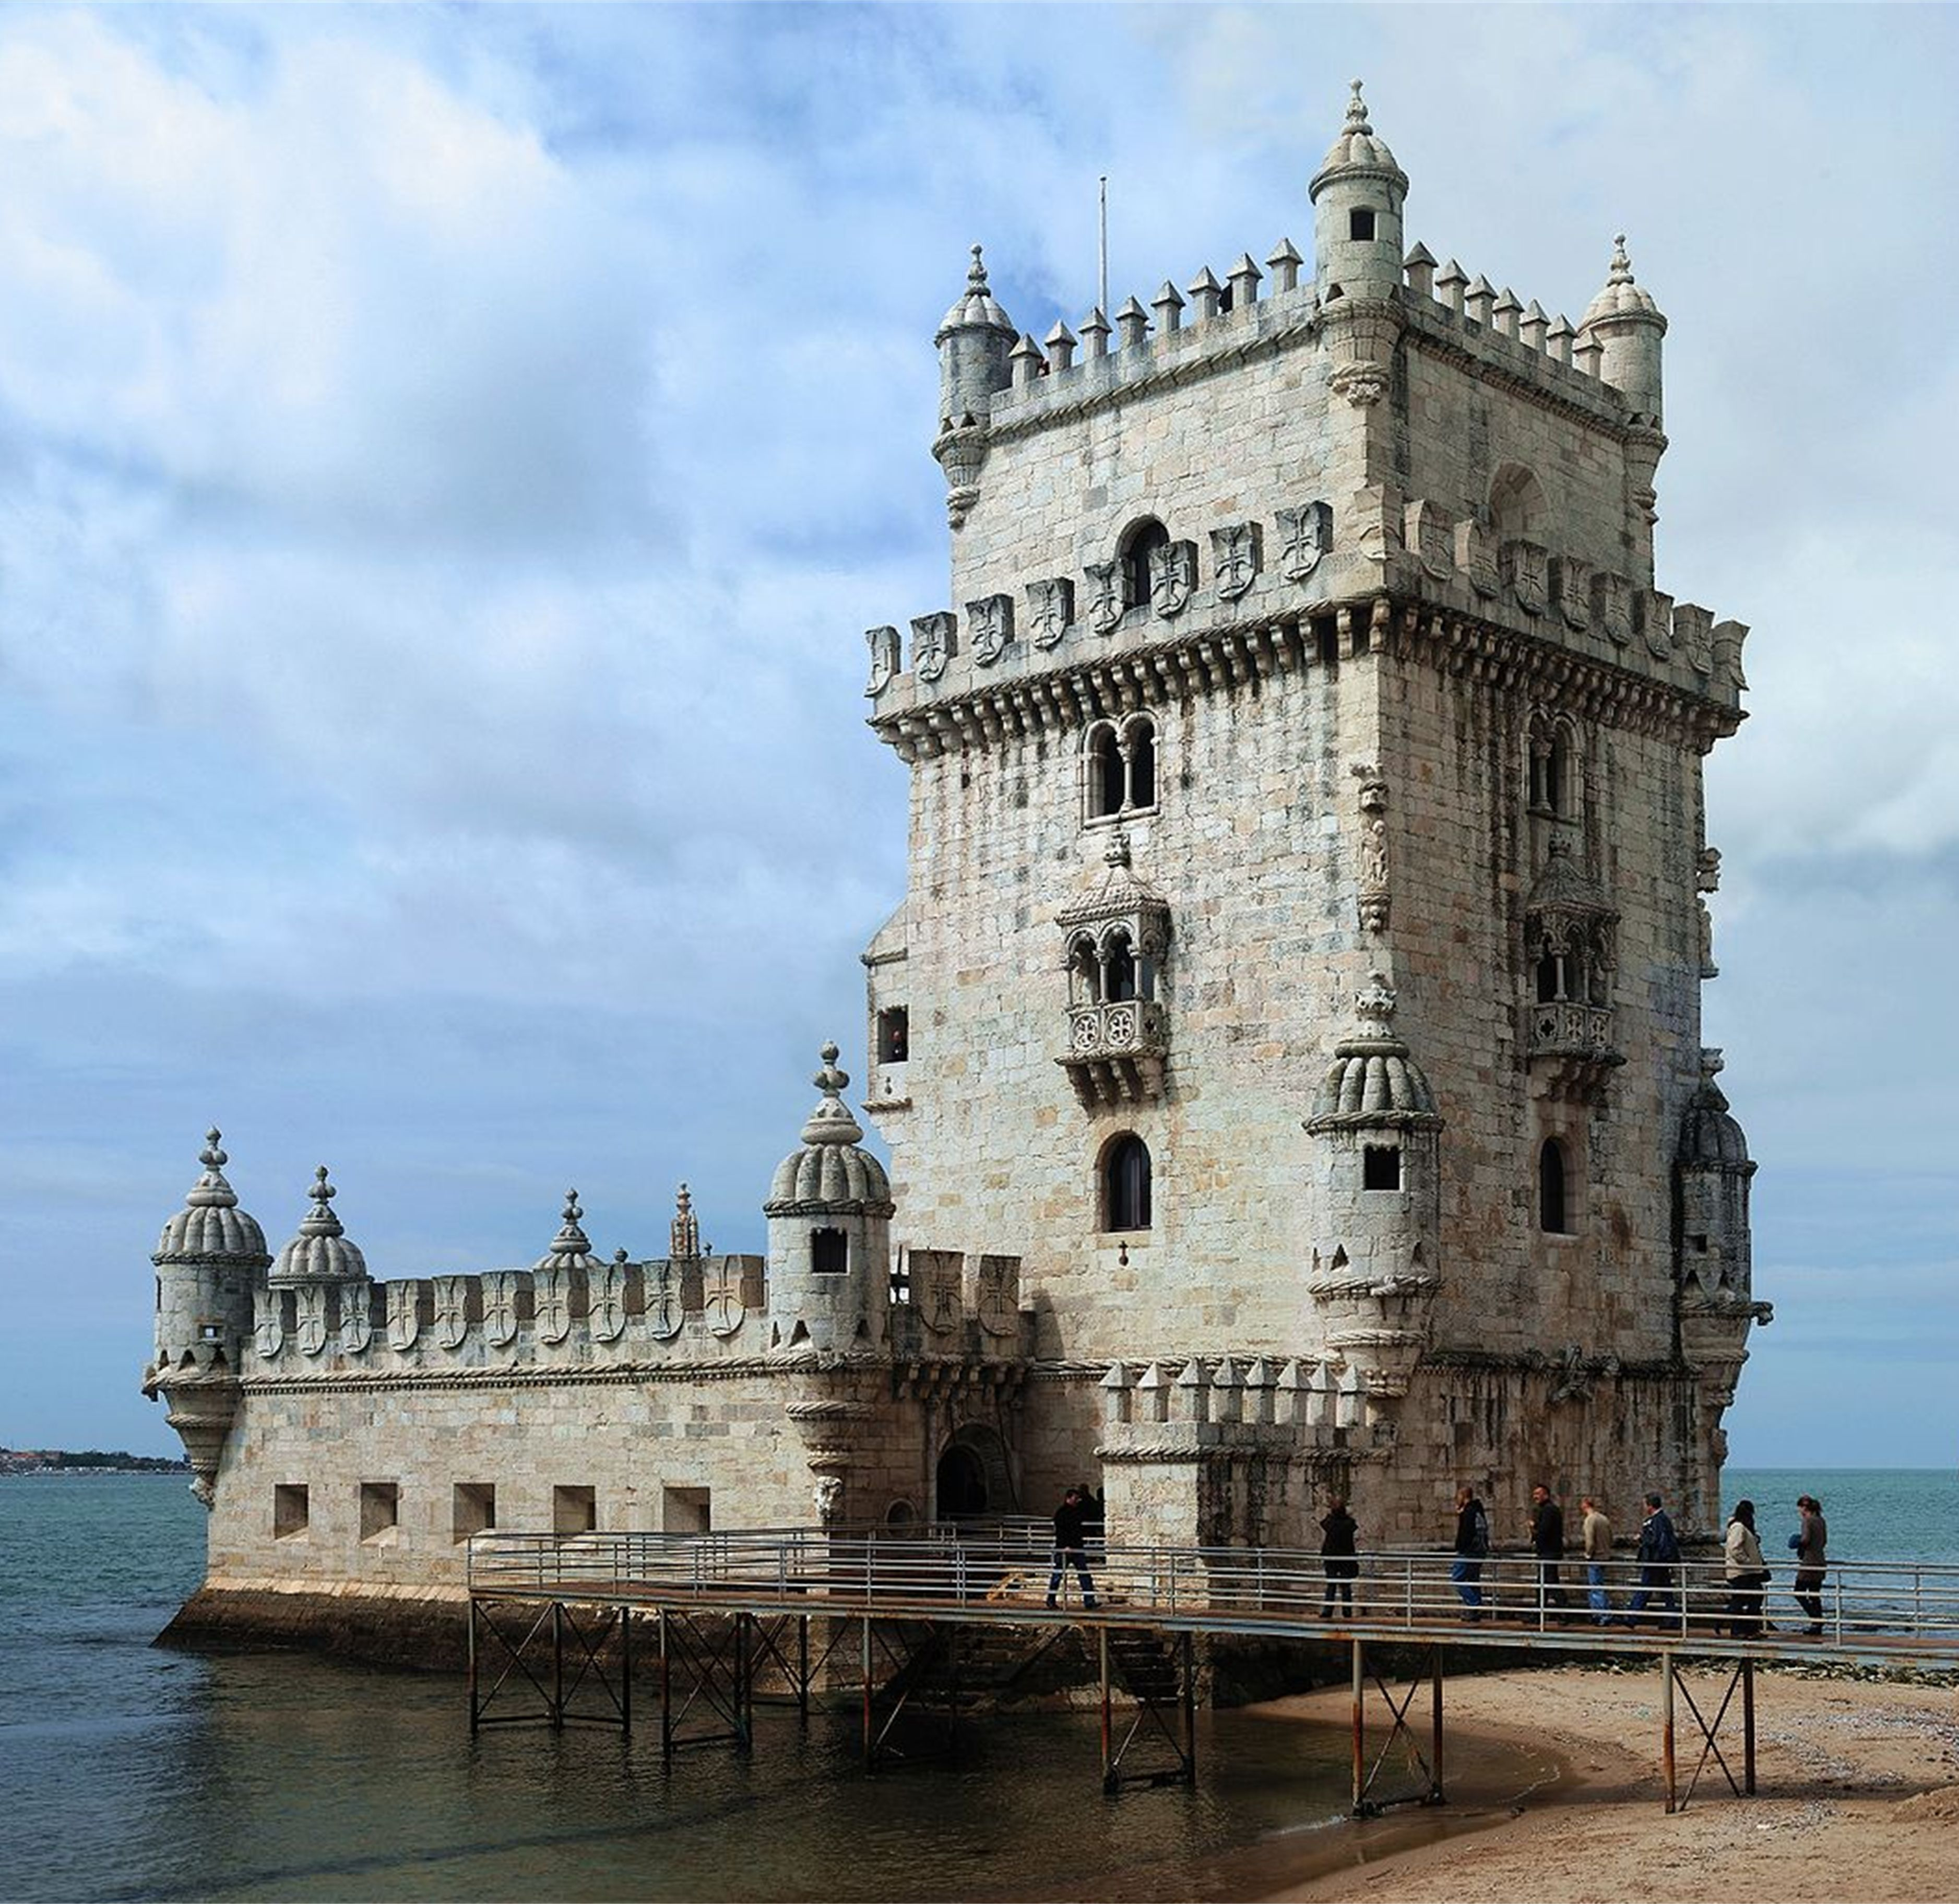 Great memories with friends at the Belém Tower in Lisbon, Portugal.